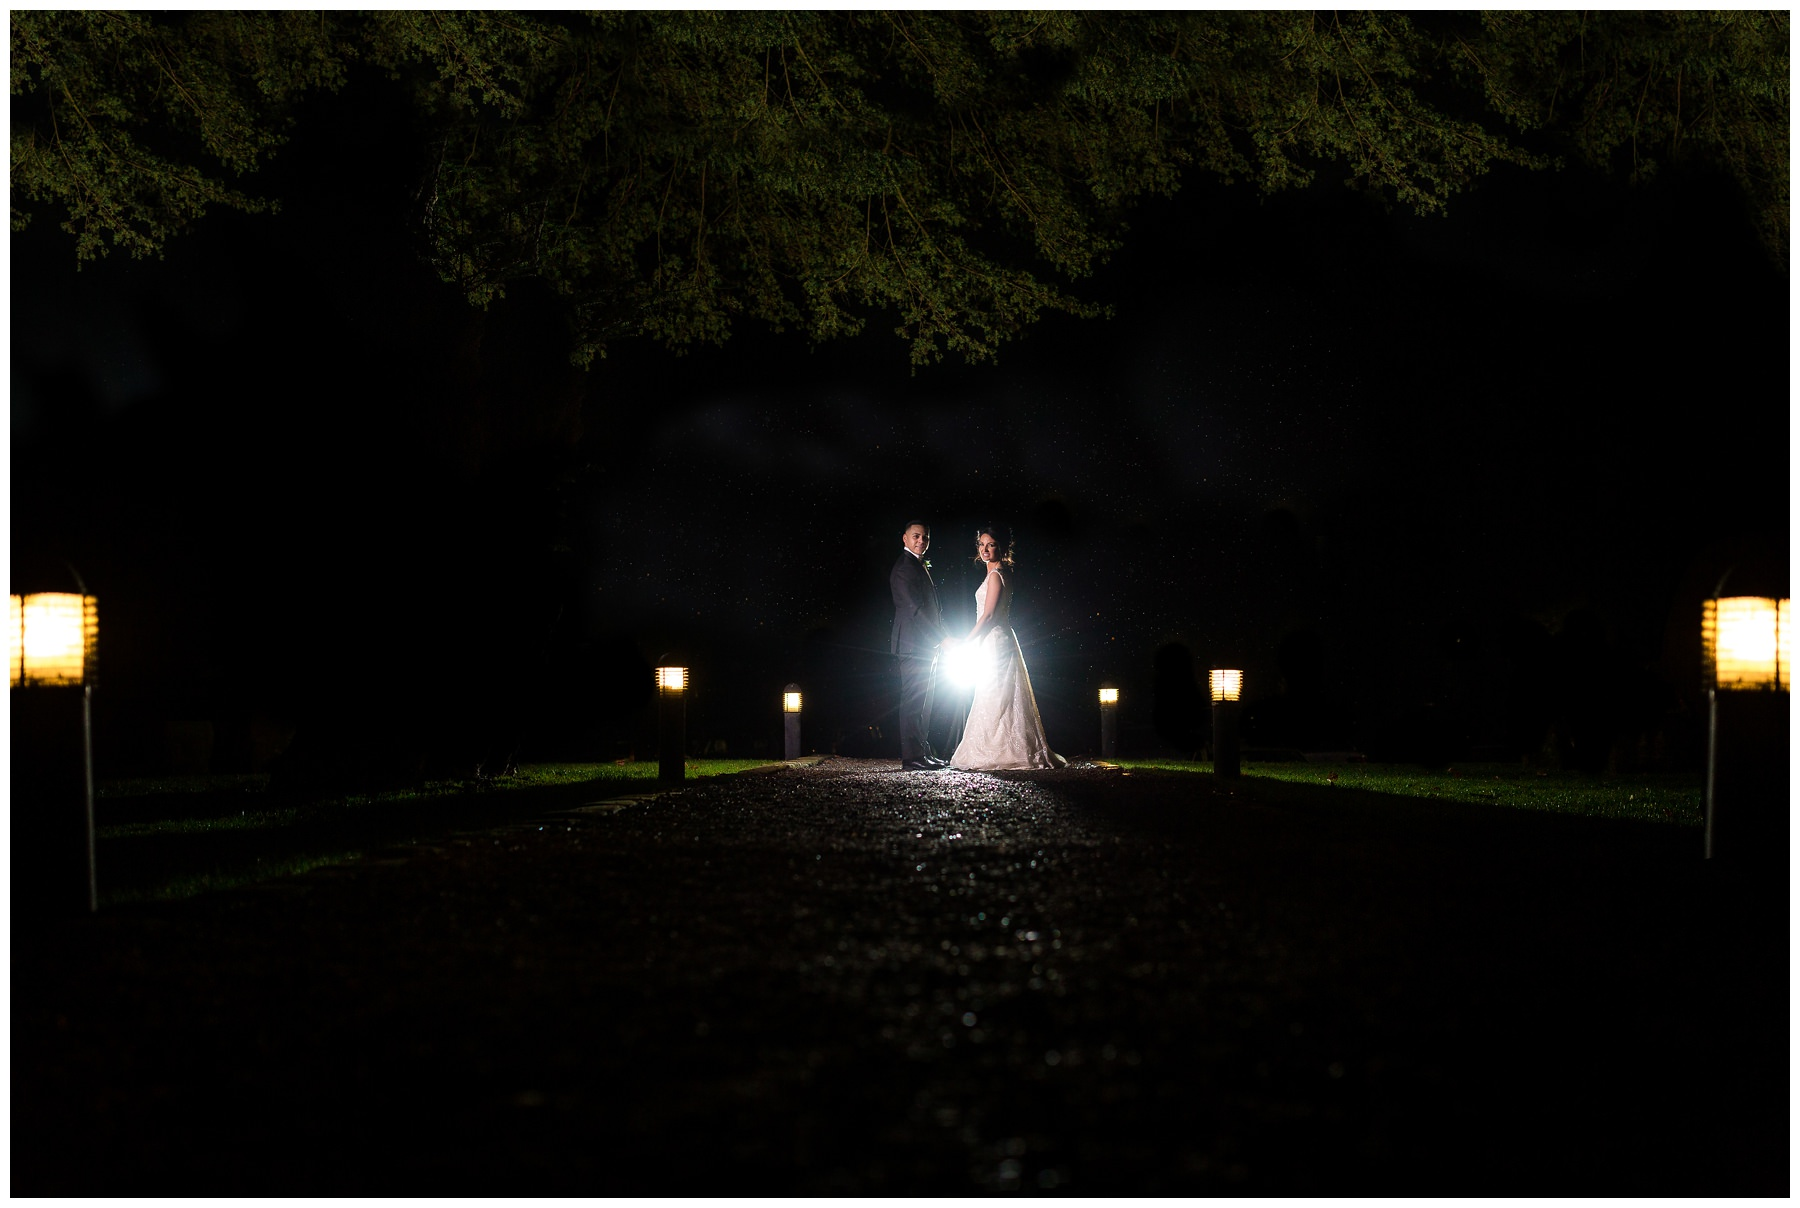 bride and groom stood in the dark outside with a path of lights leading up to them